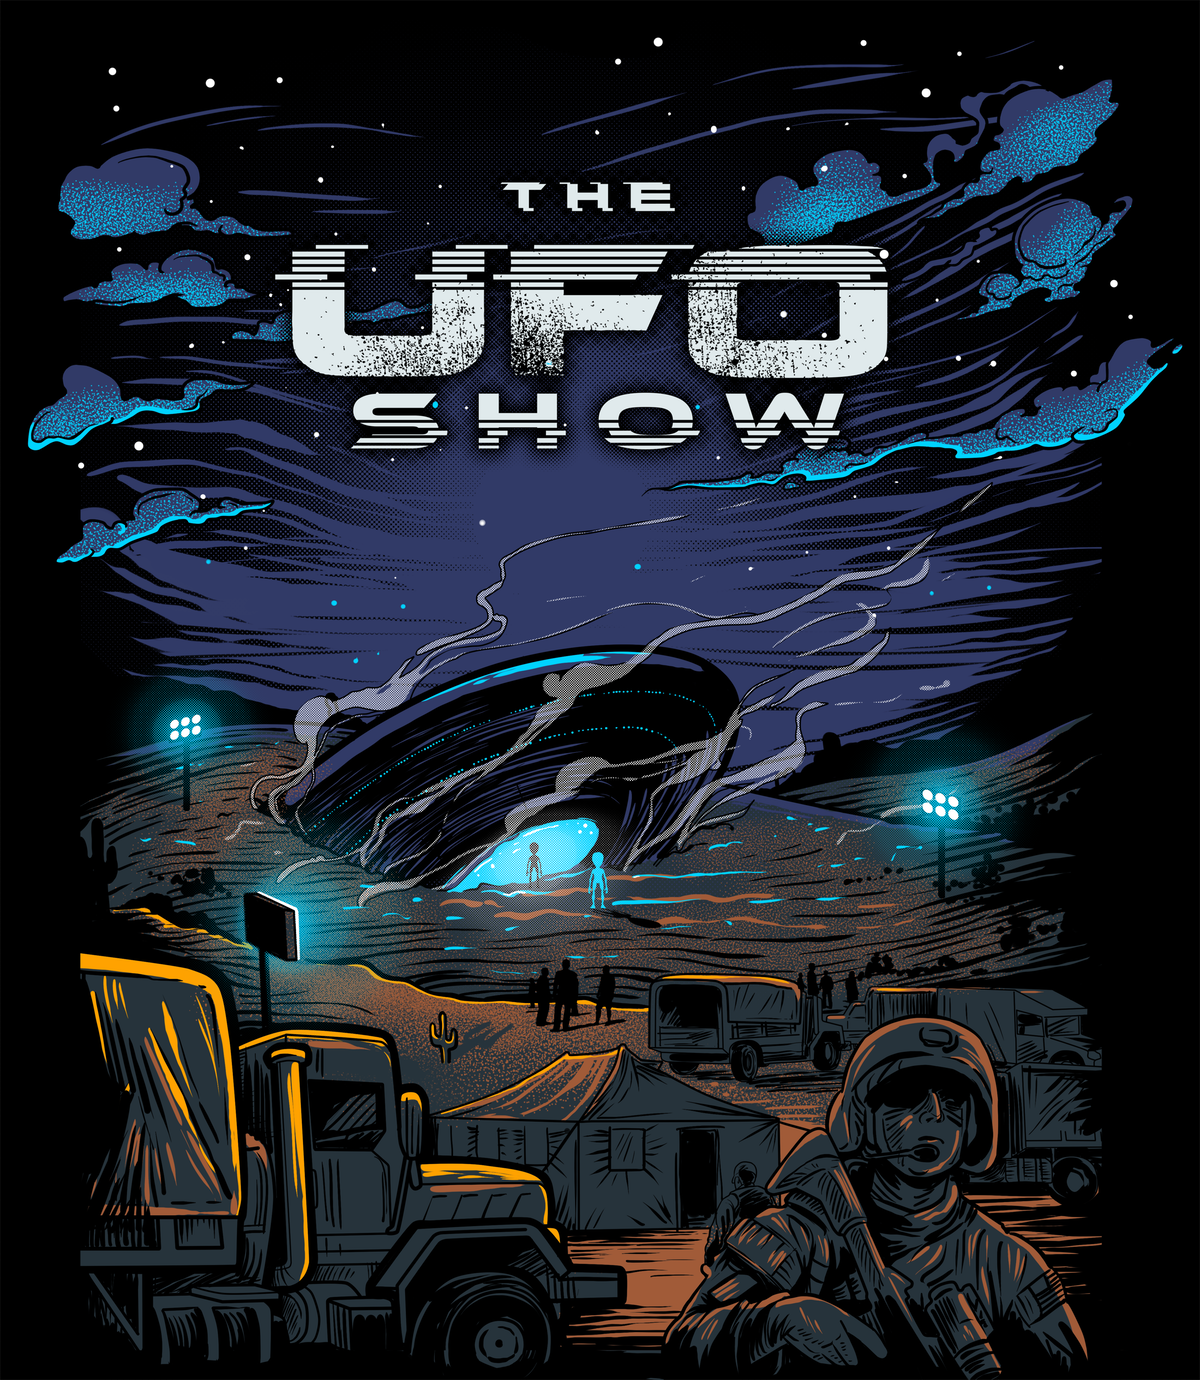 UFO/Alien themed t-shirt